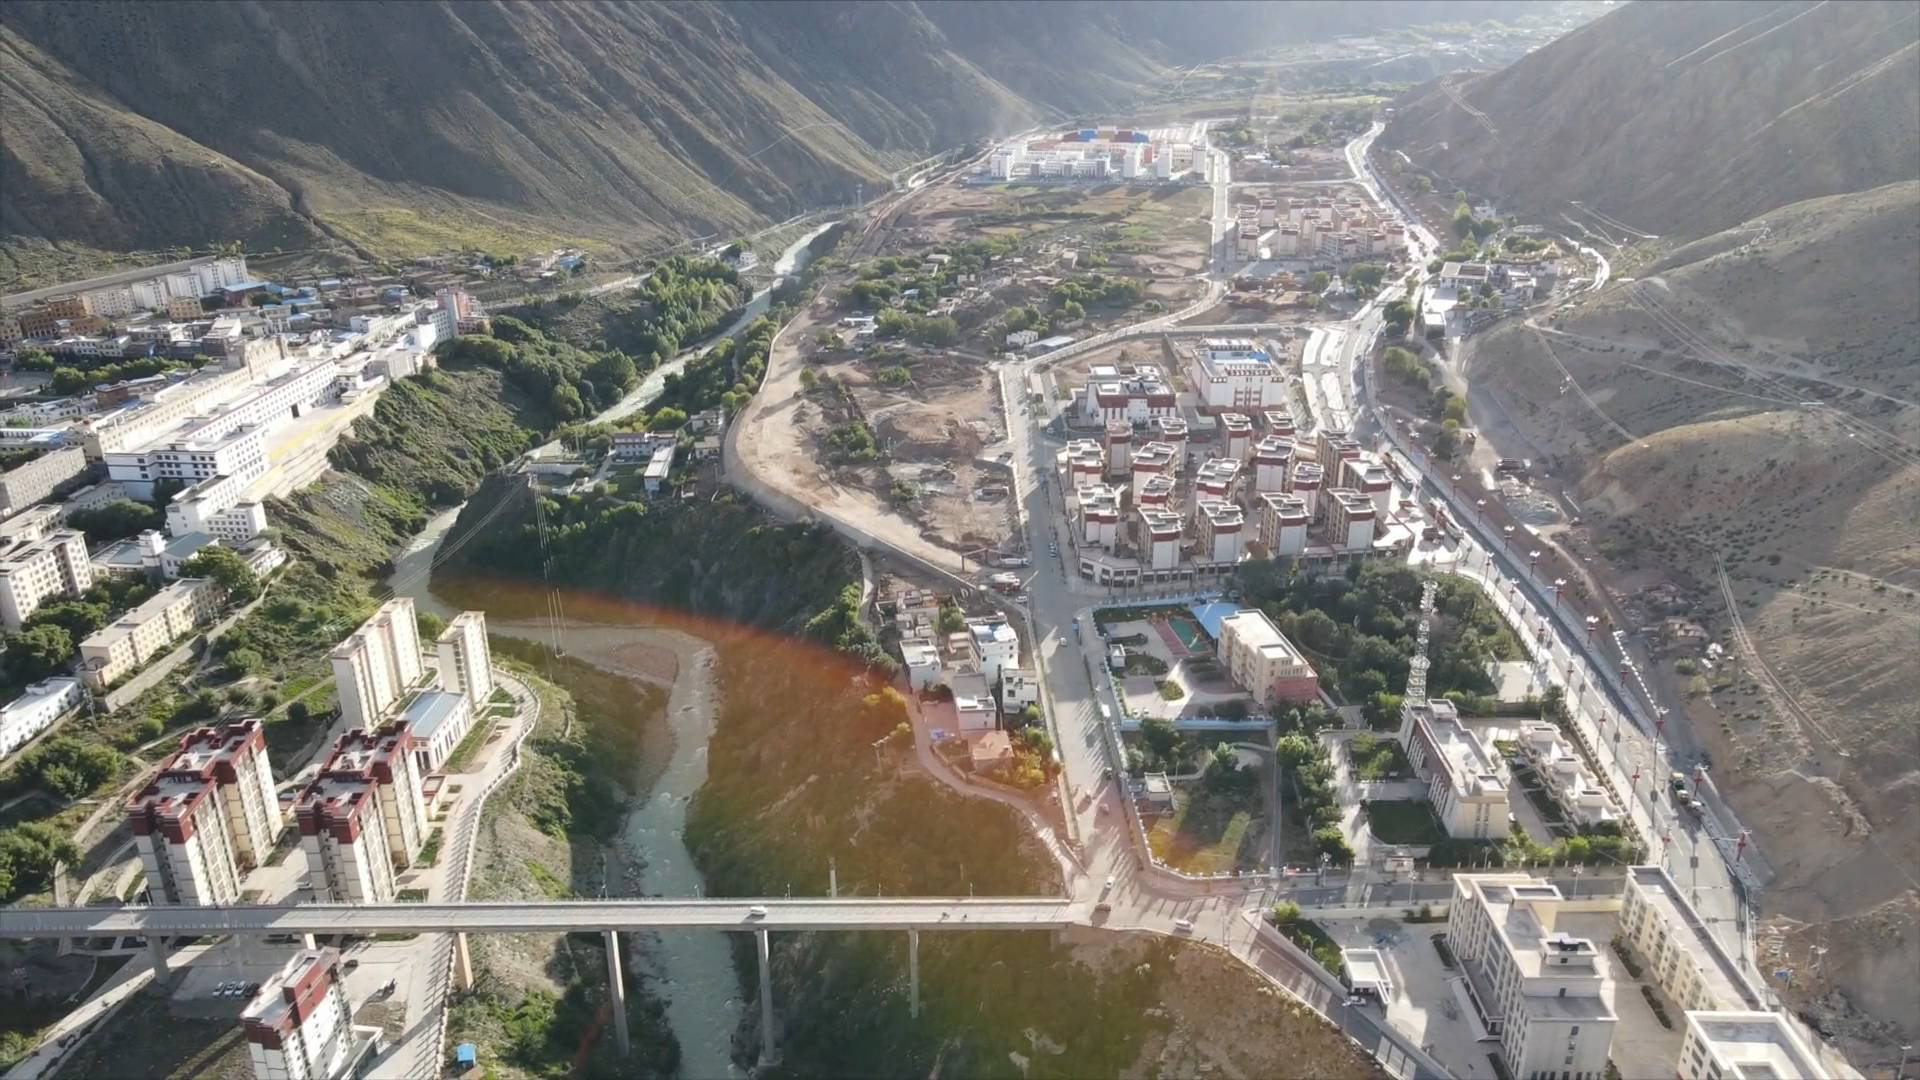 Baxoi County takes on new look in Qamdo